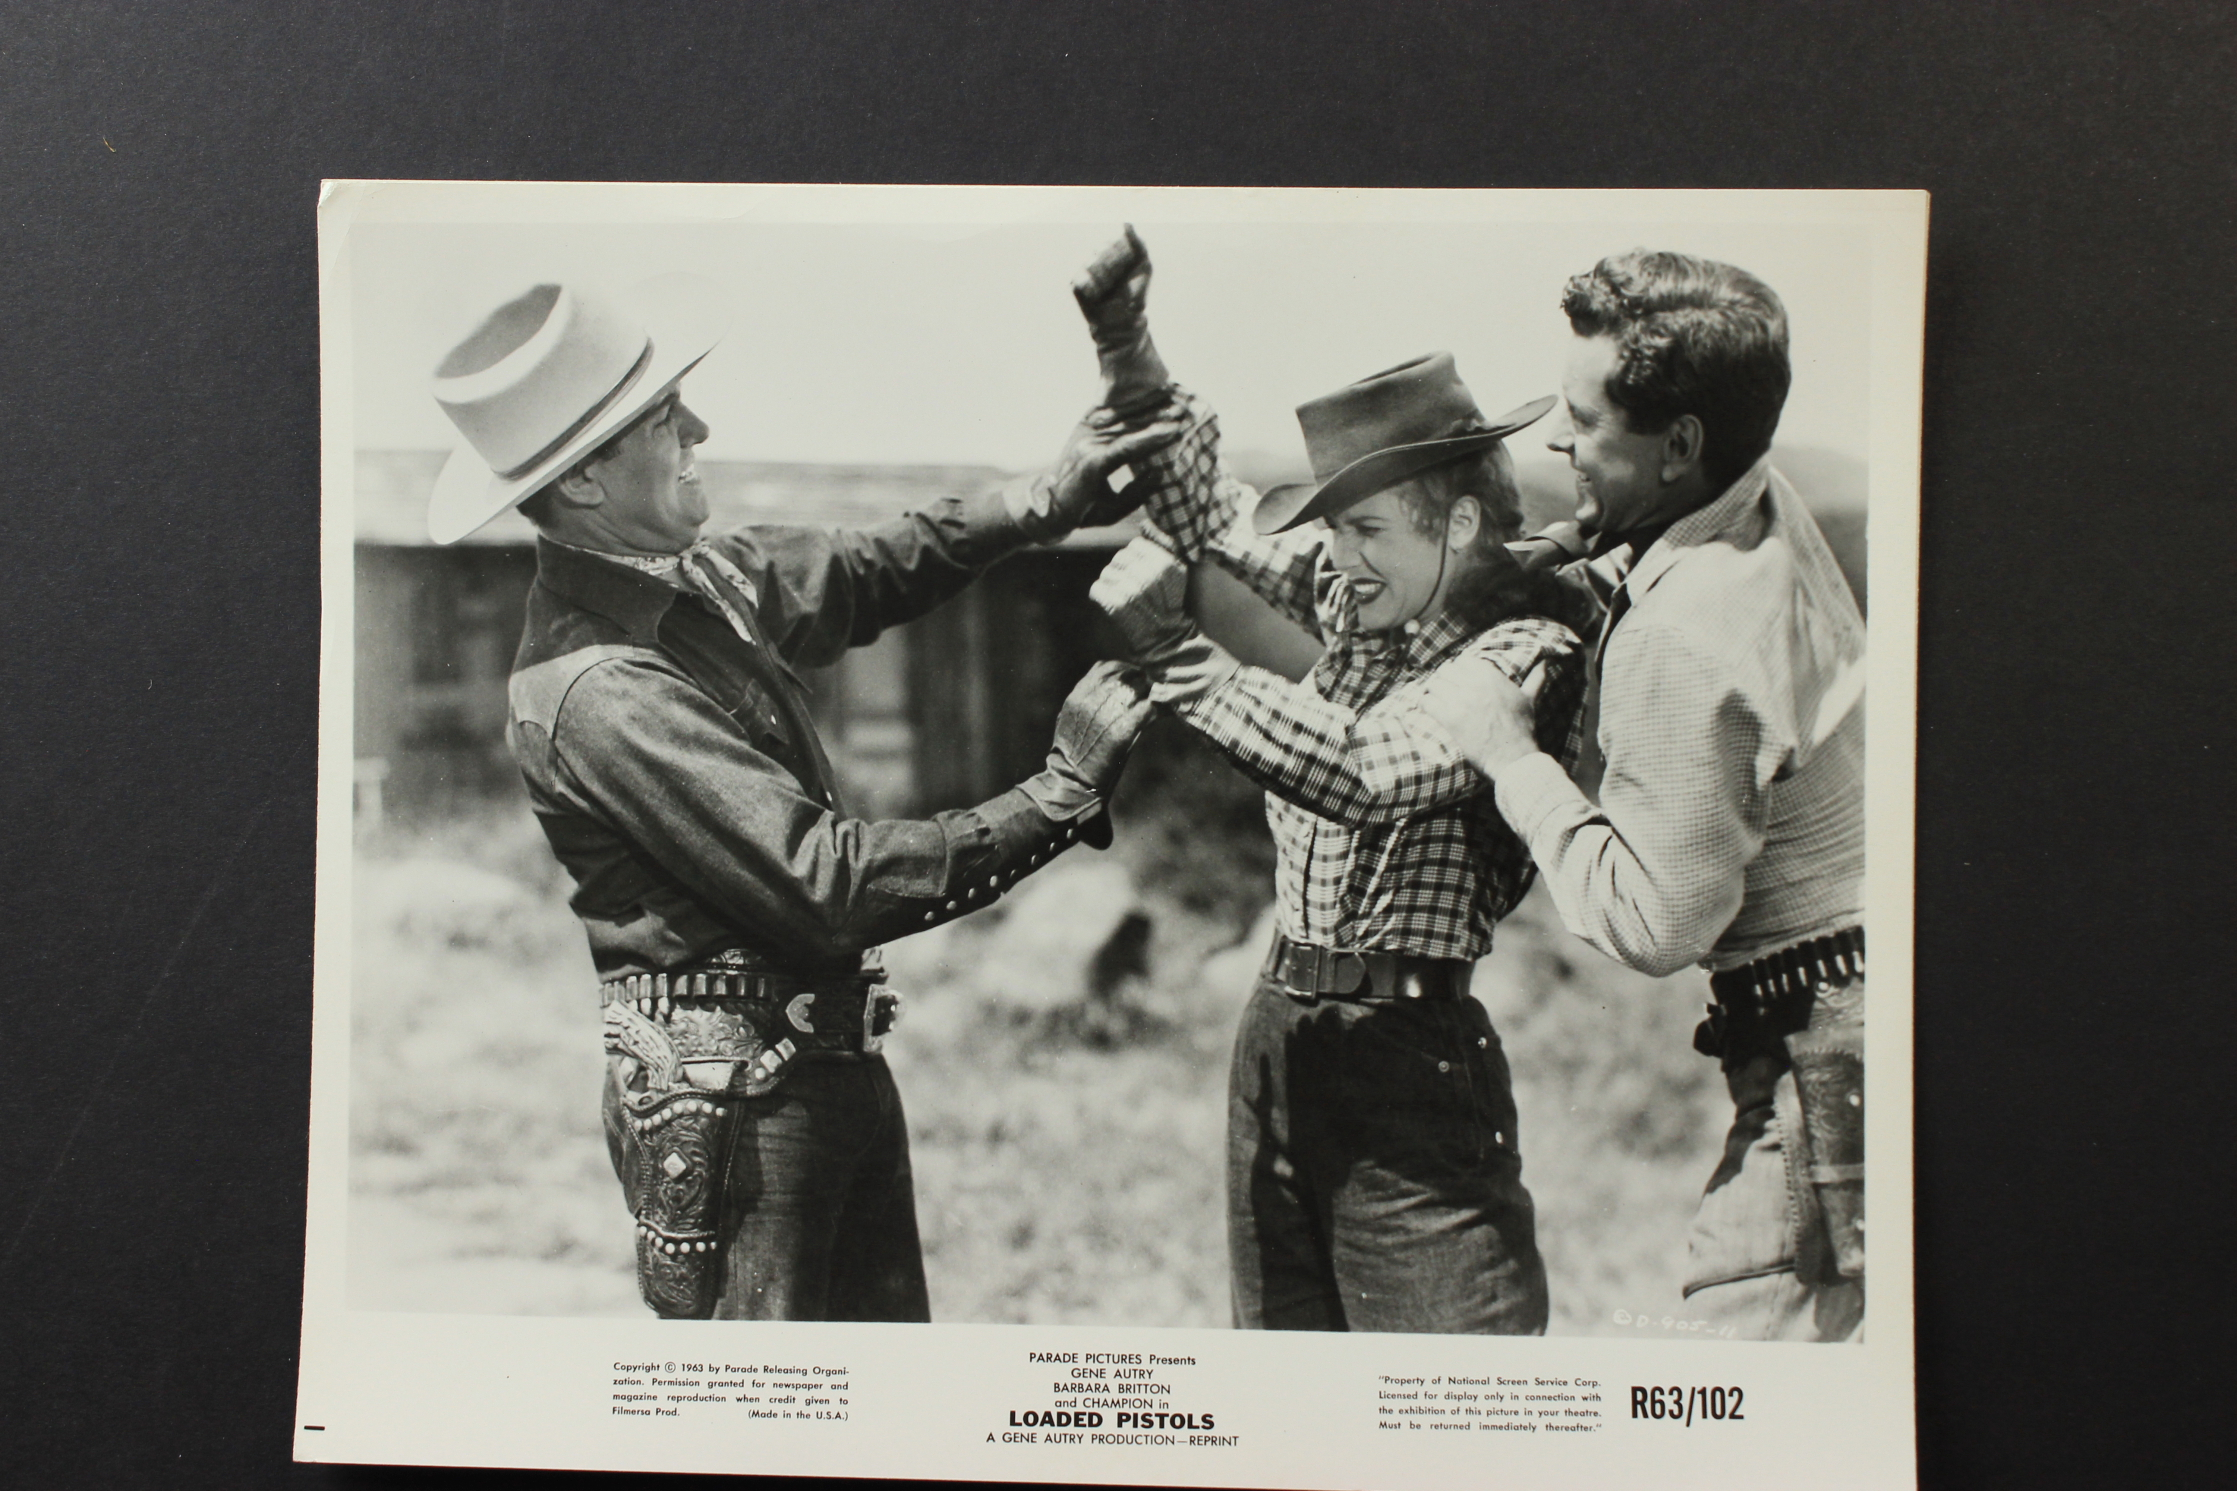 Gene Autry, Russell Arms, and Barbara Britton in Loaded Pistols (1948)